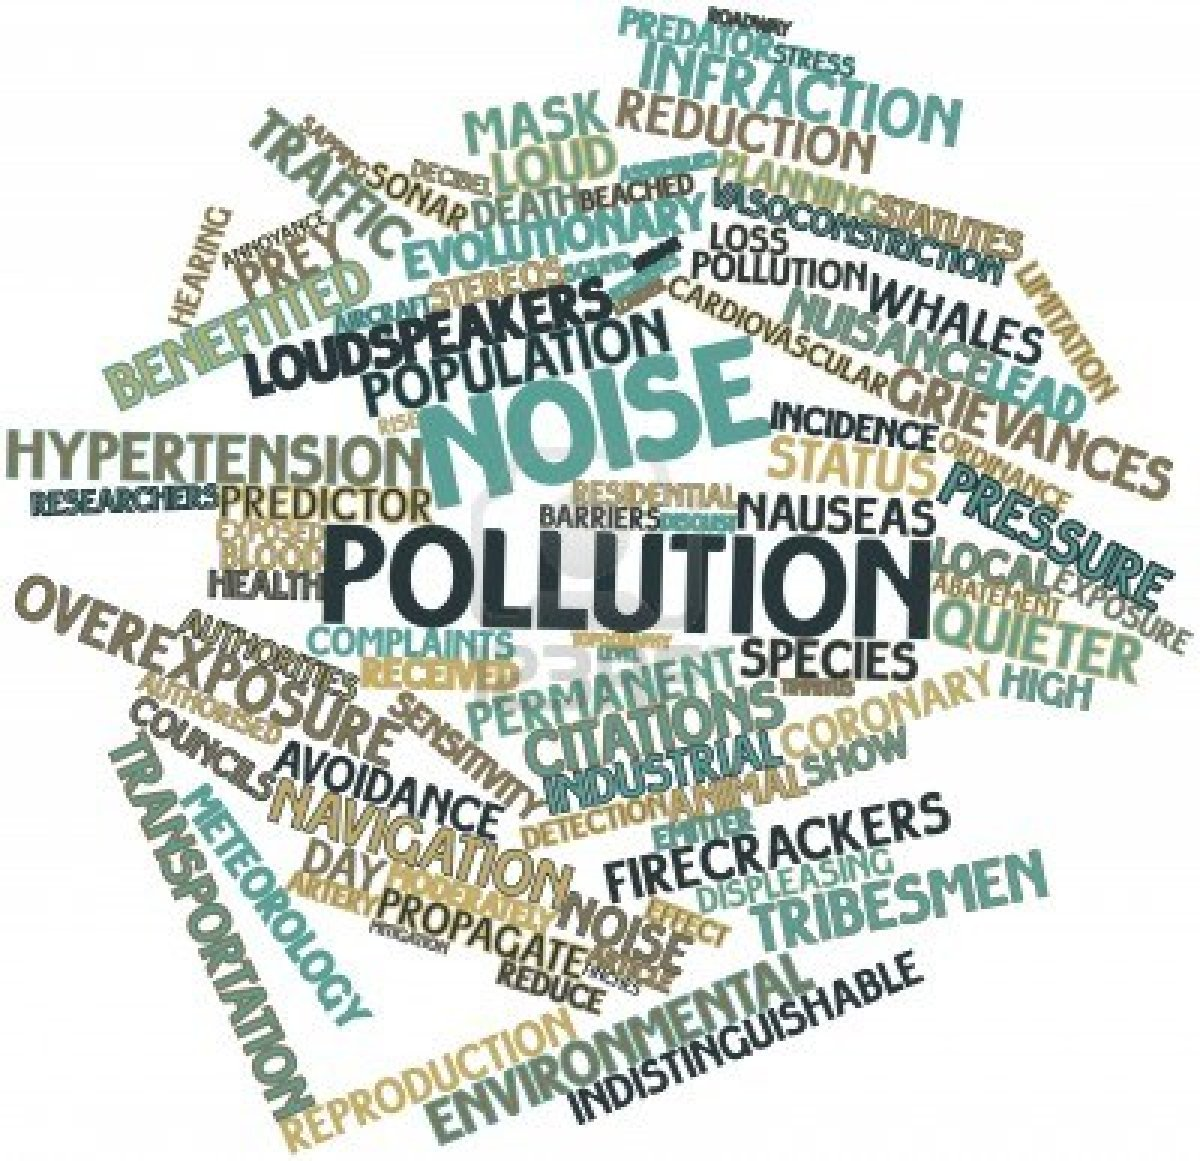 pollution in the city essay